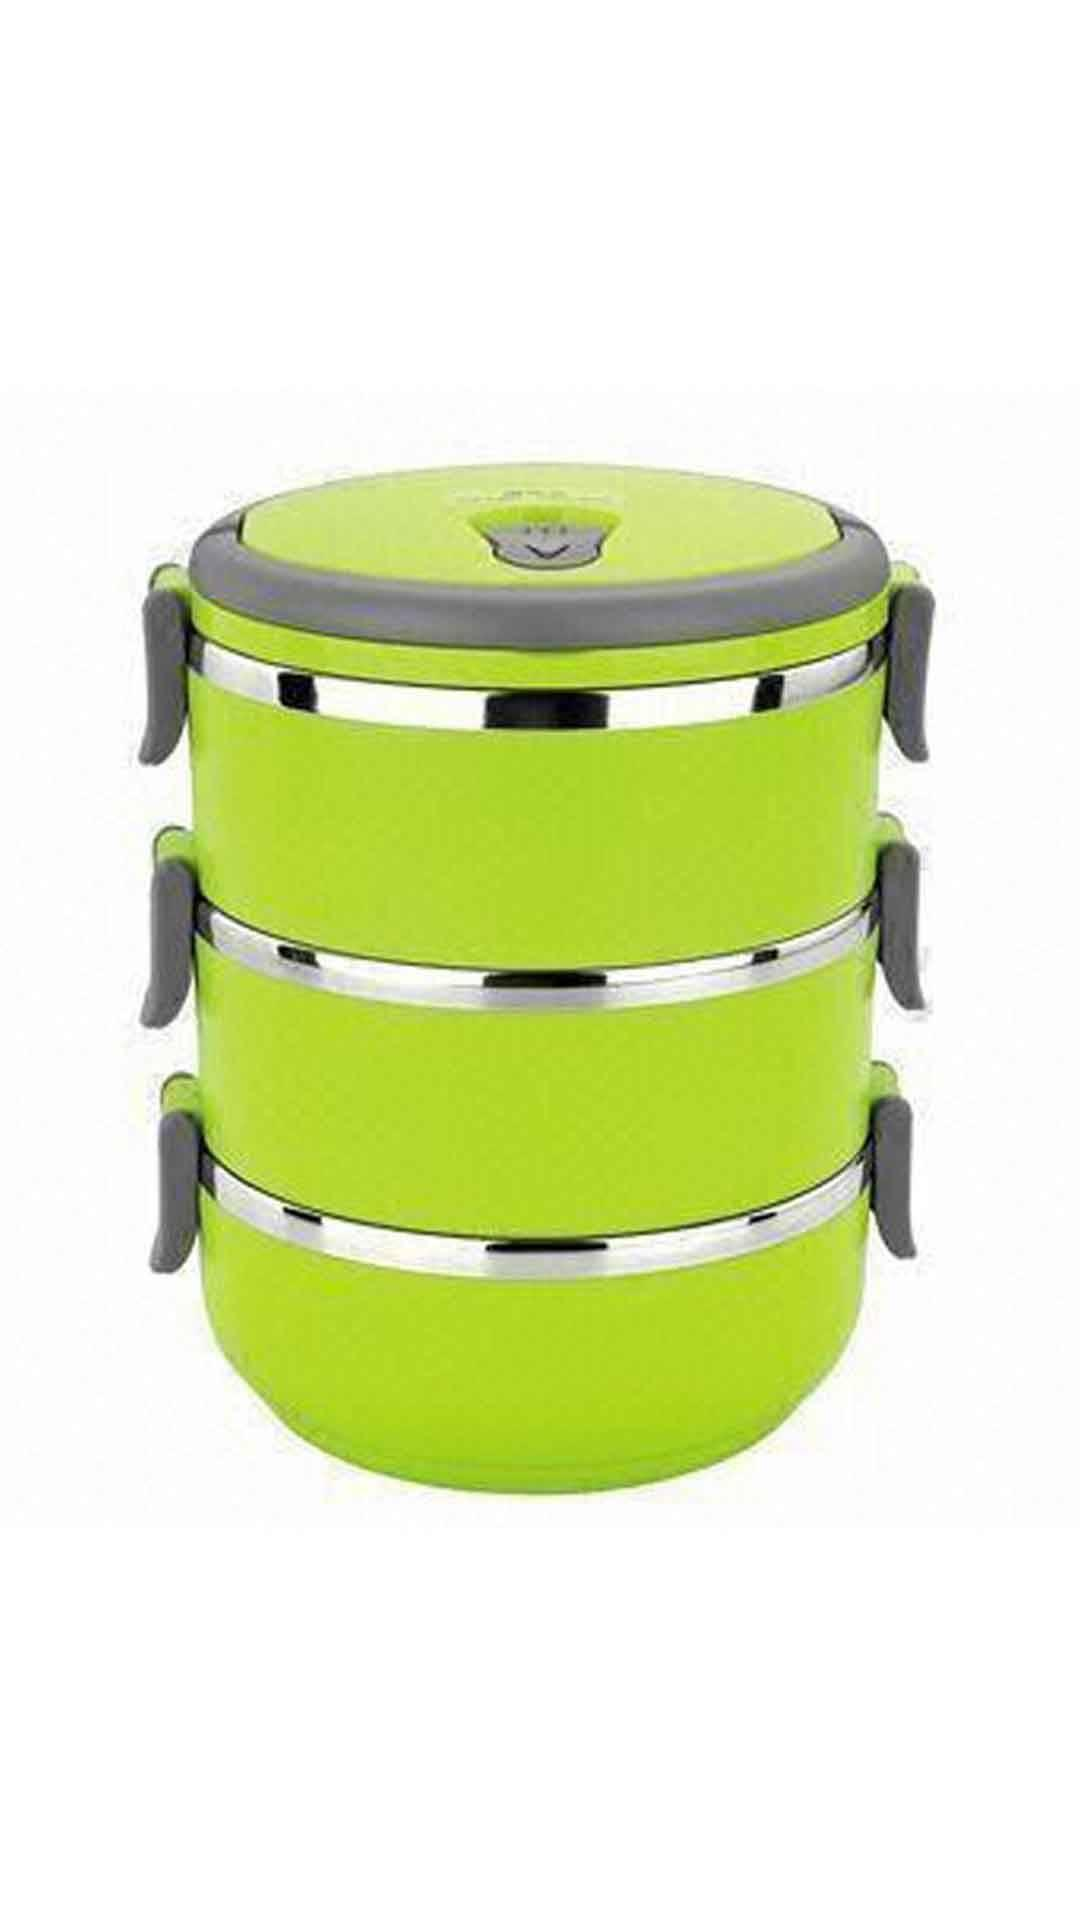 Imported Lunch Box Green- 3 Layer